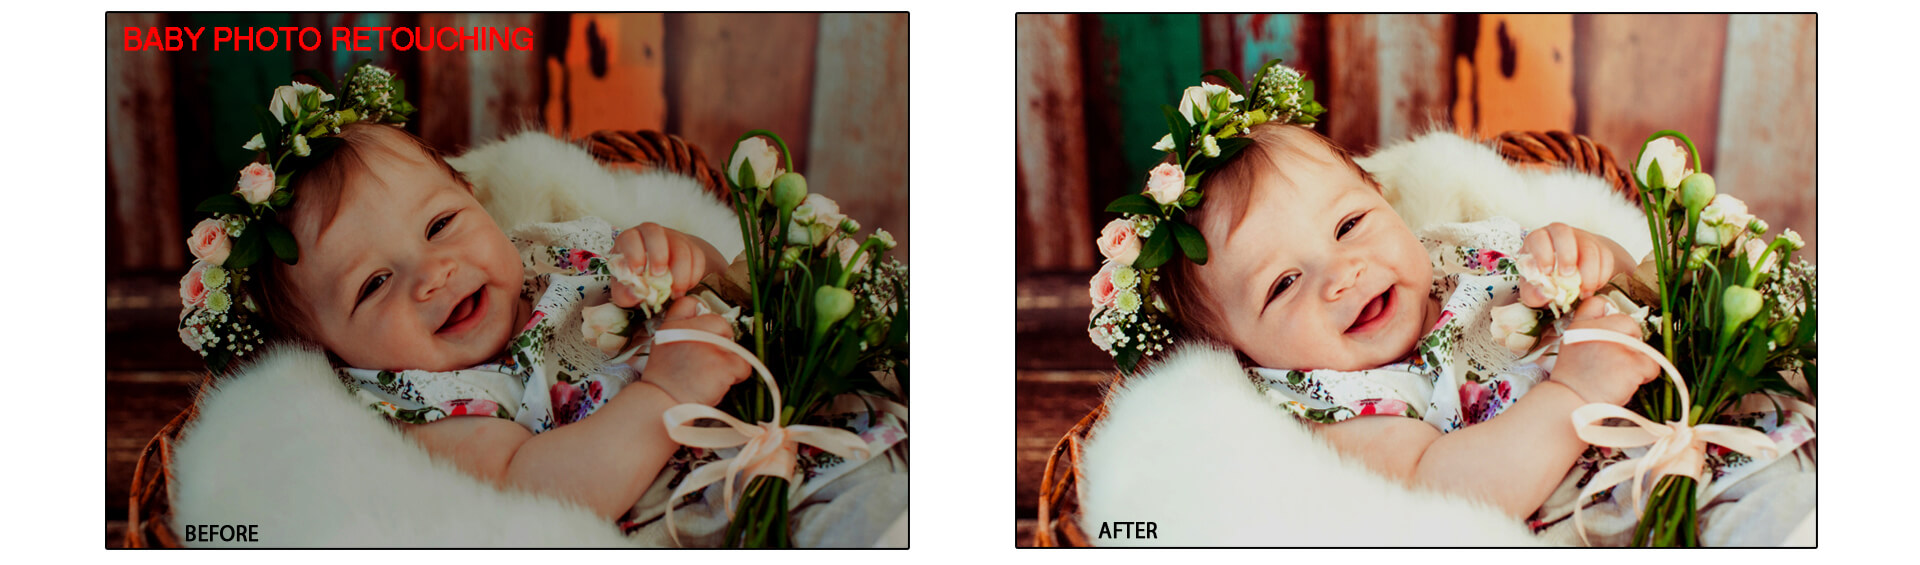 Baby Portraits Retouching Services